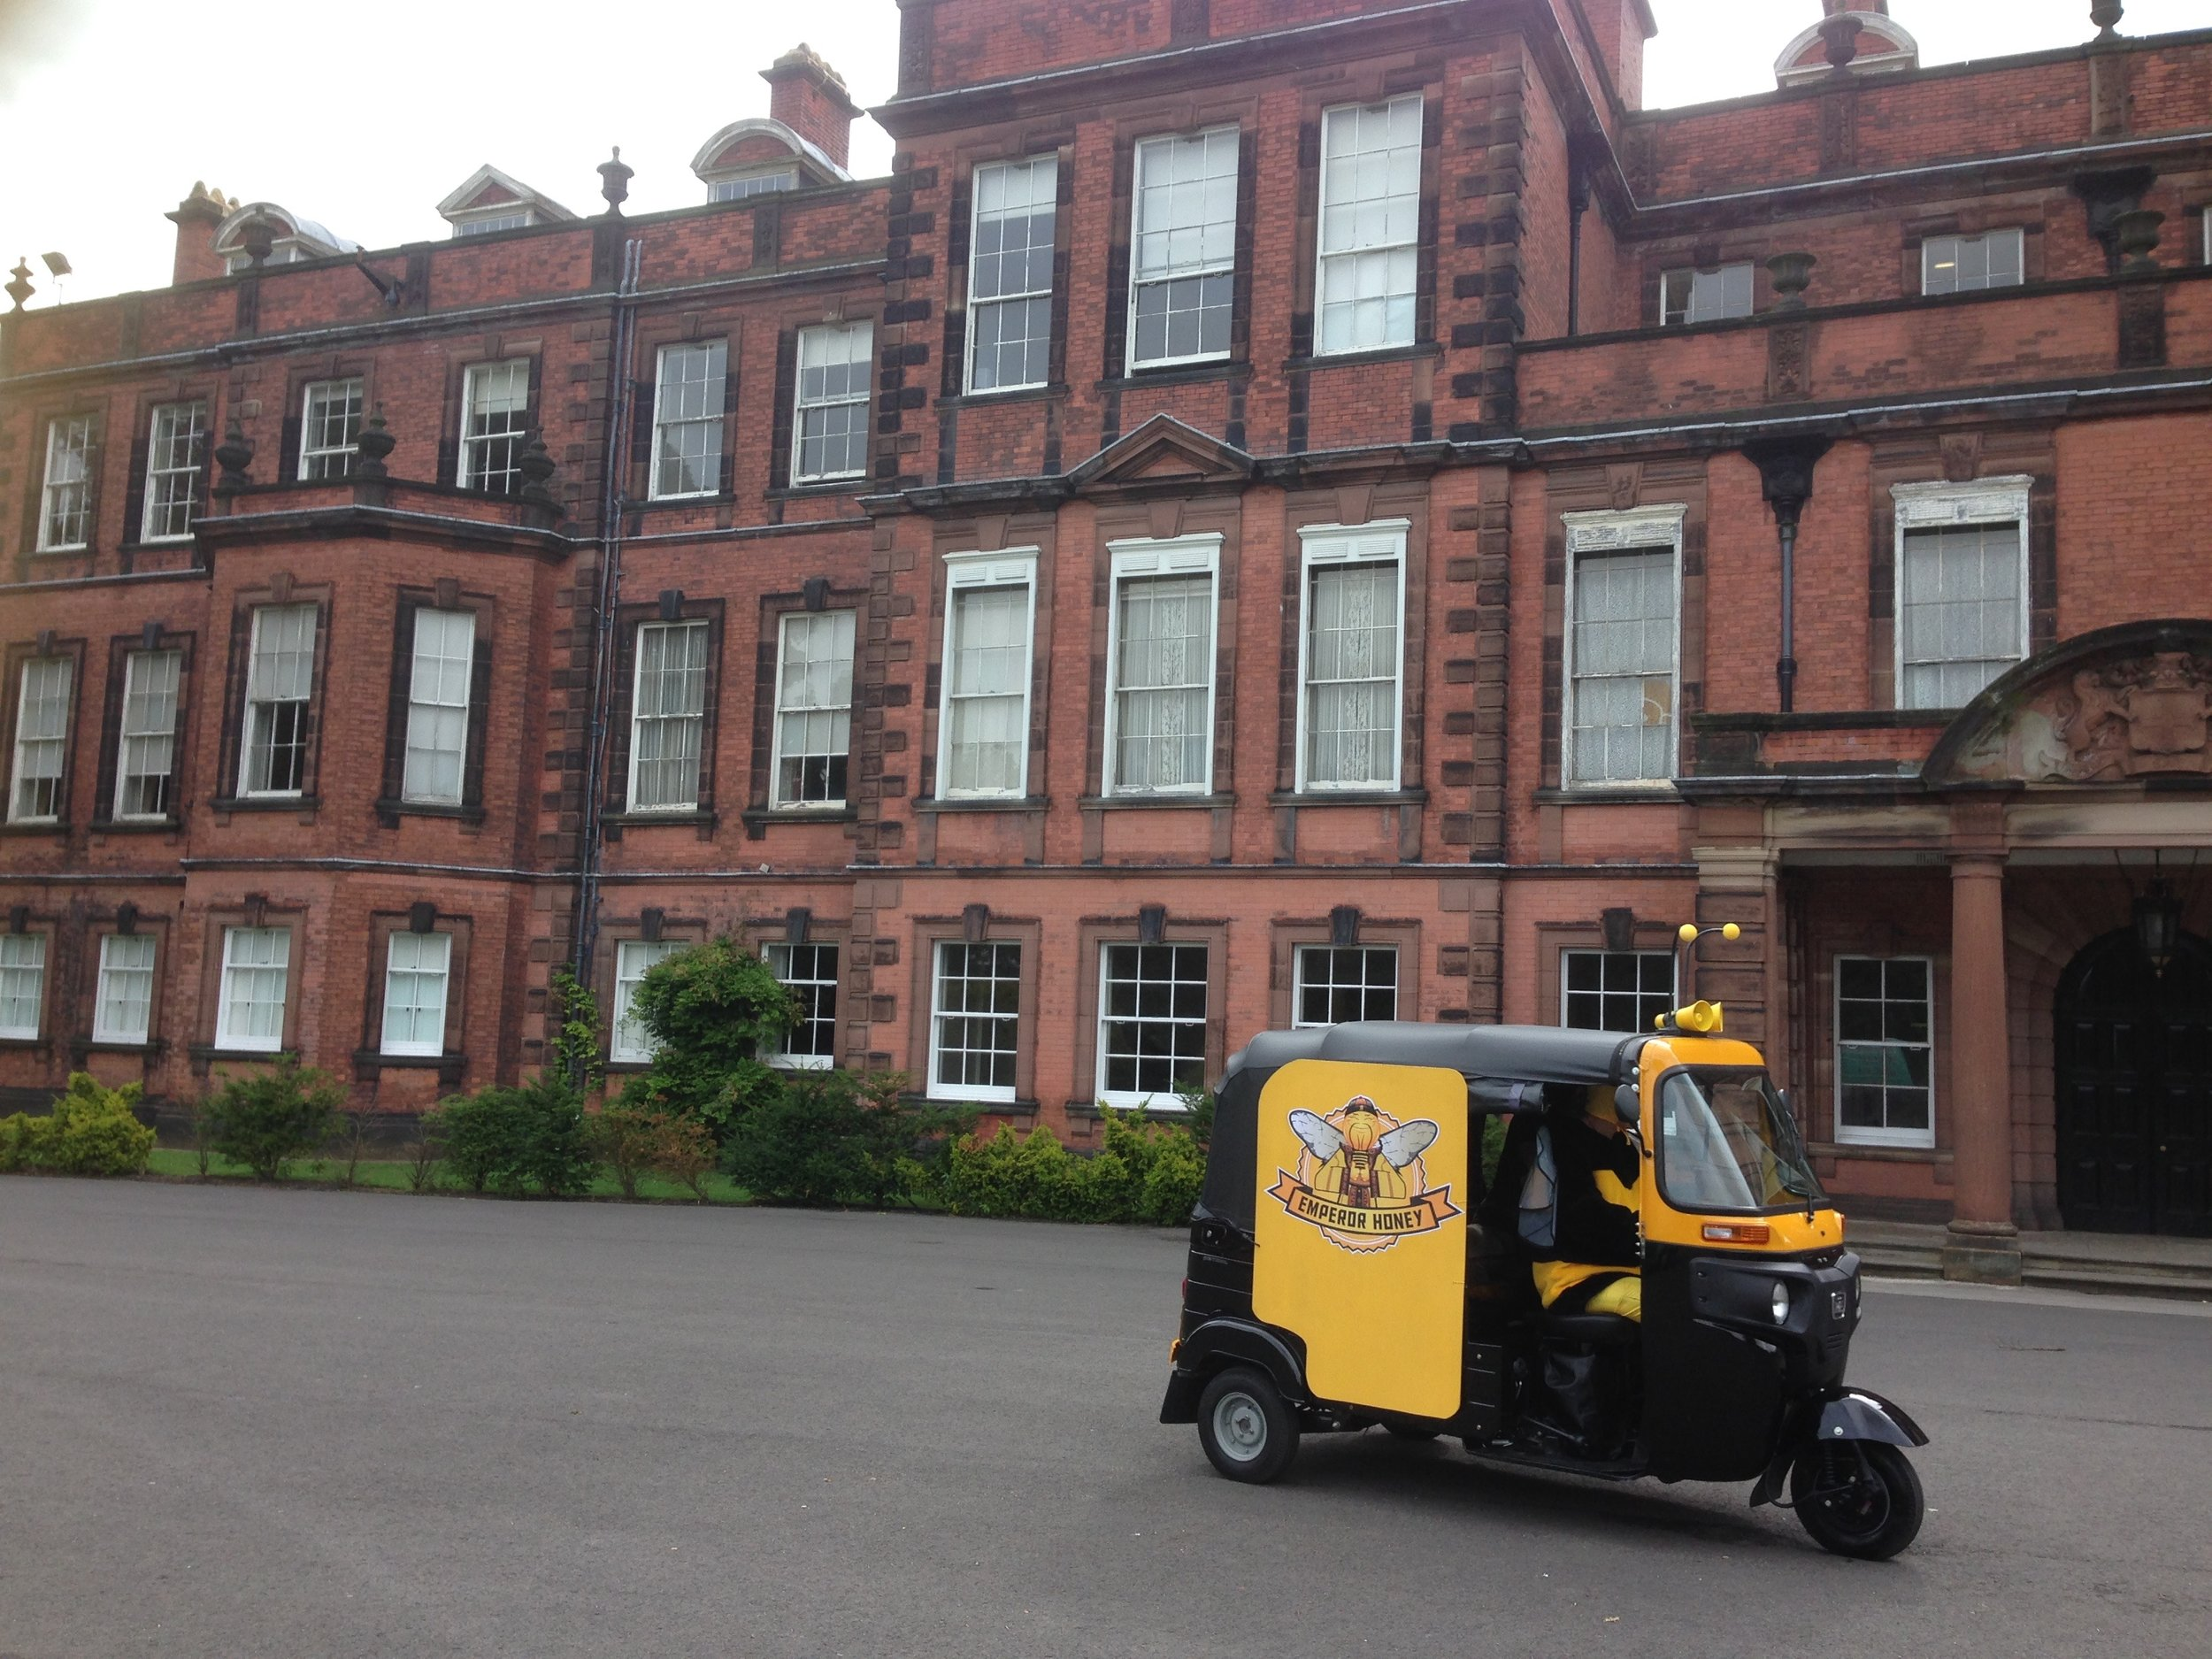 The tuktuk on location at Croxteth Hall, Liverpool